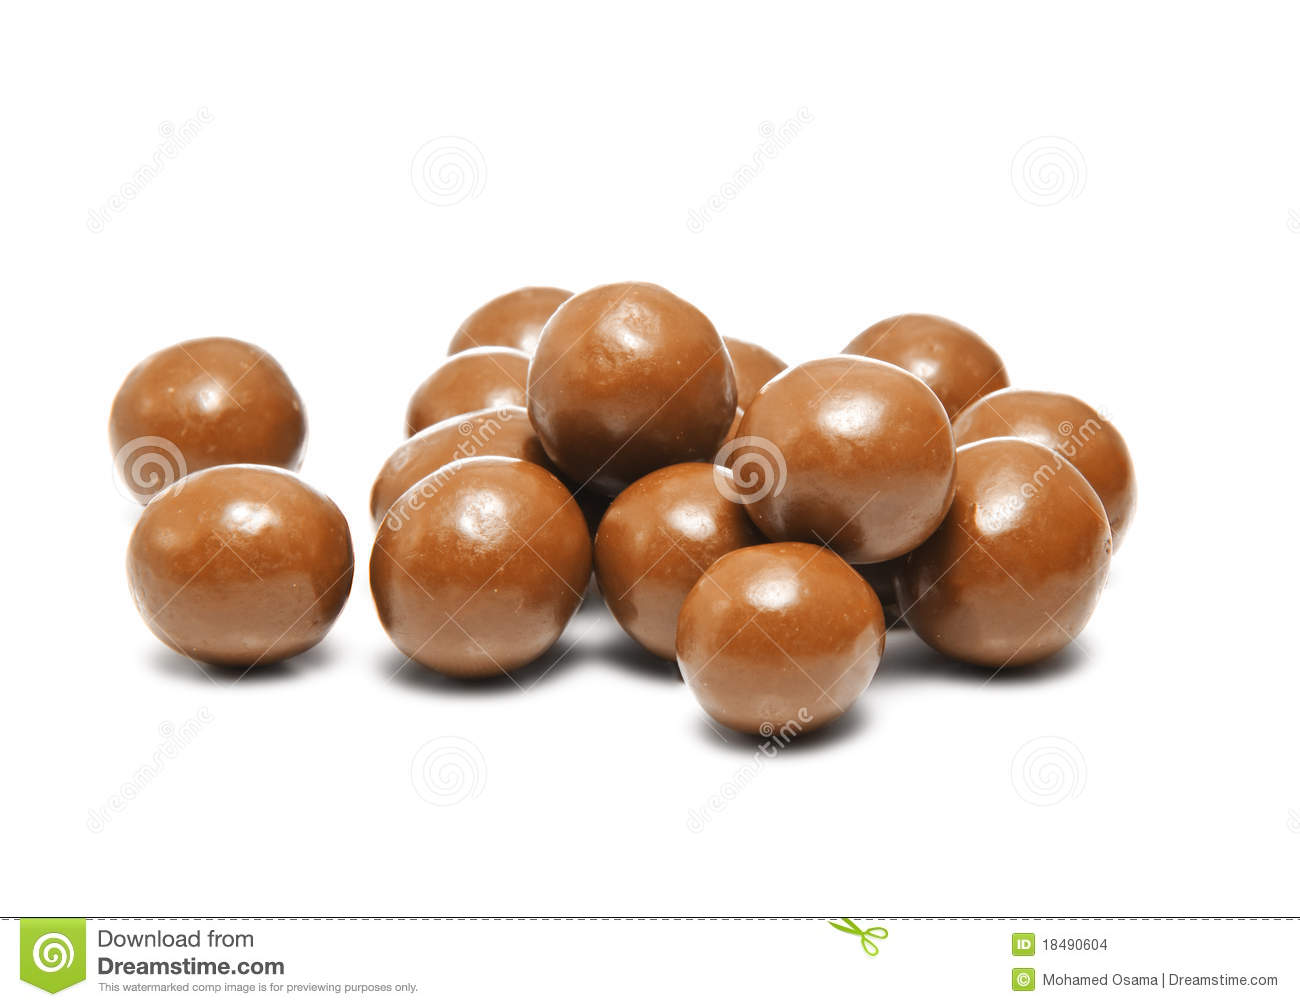 Cereal Chocolate Balls Stock Photos, Images, & Pictures.